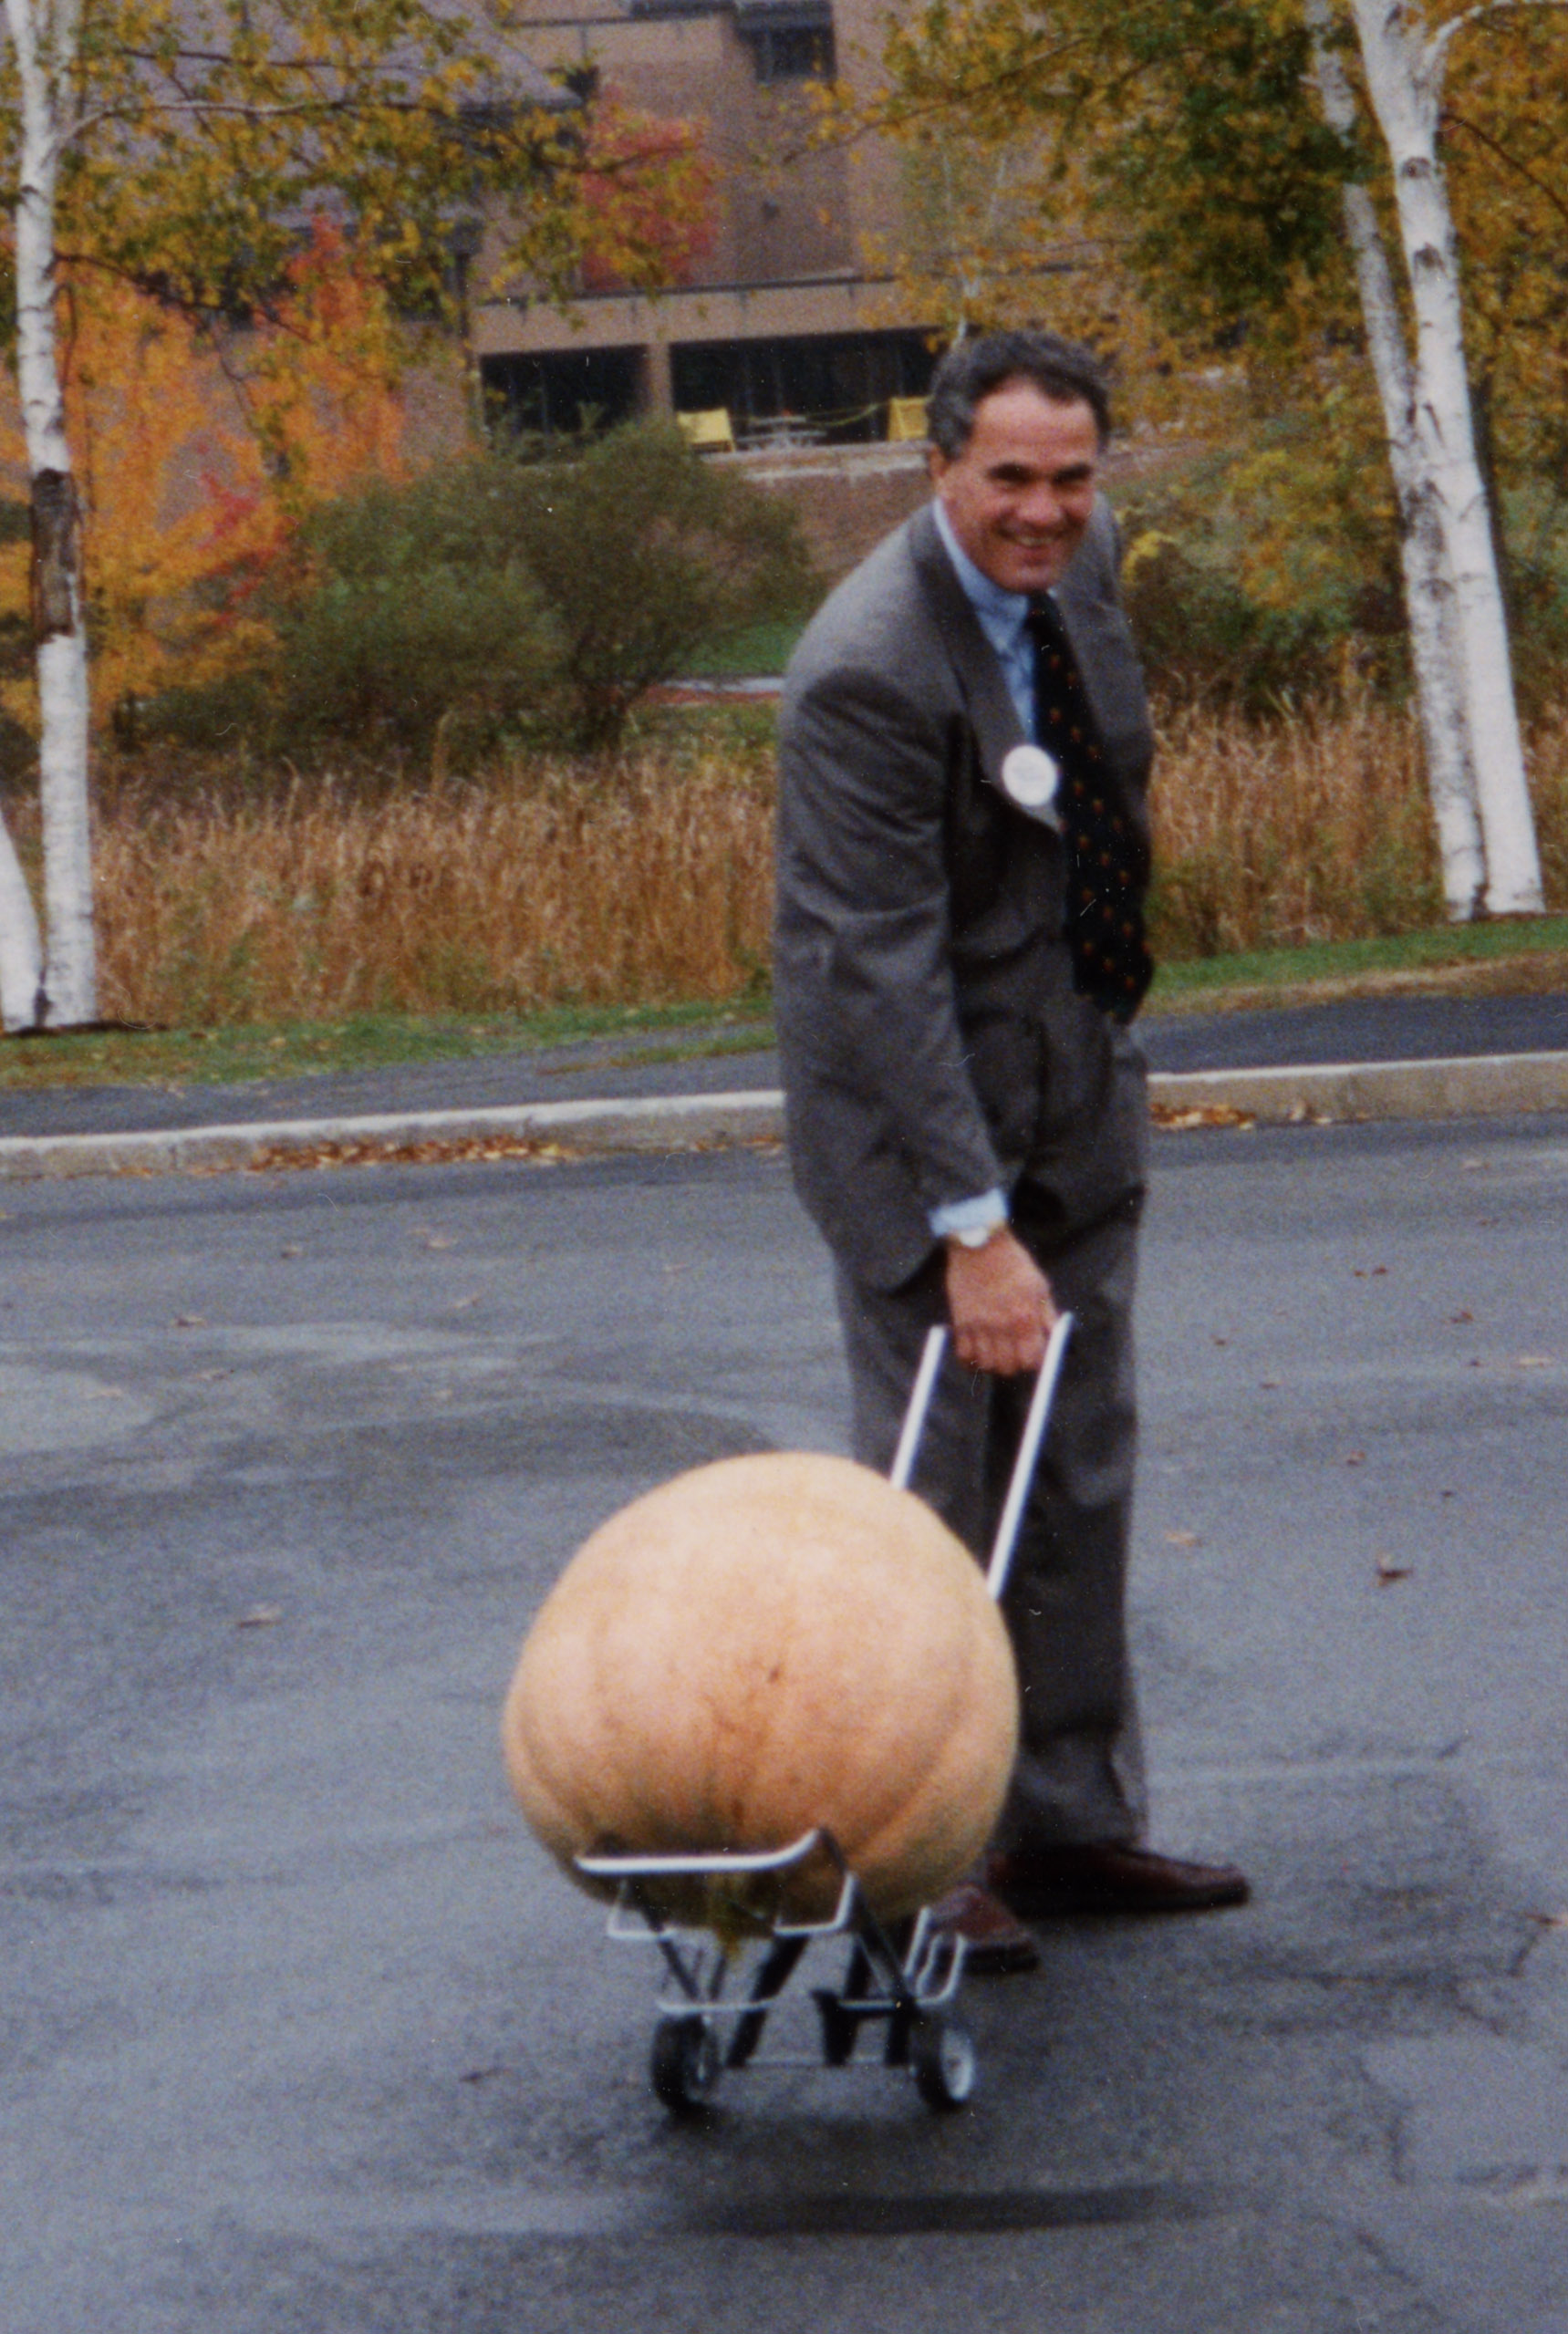 Depiction of Jay Healy with a pumpkin, Greenfield, Mass., 1998